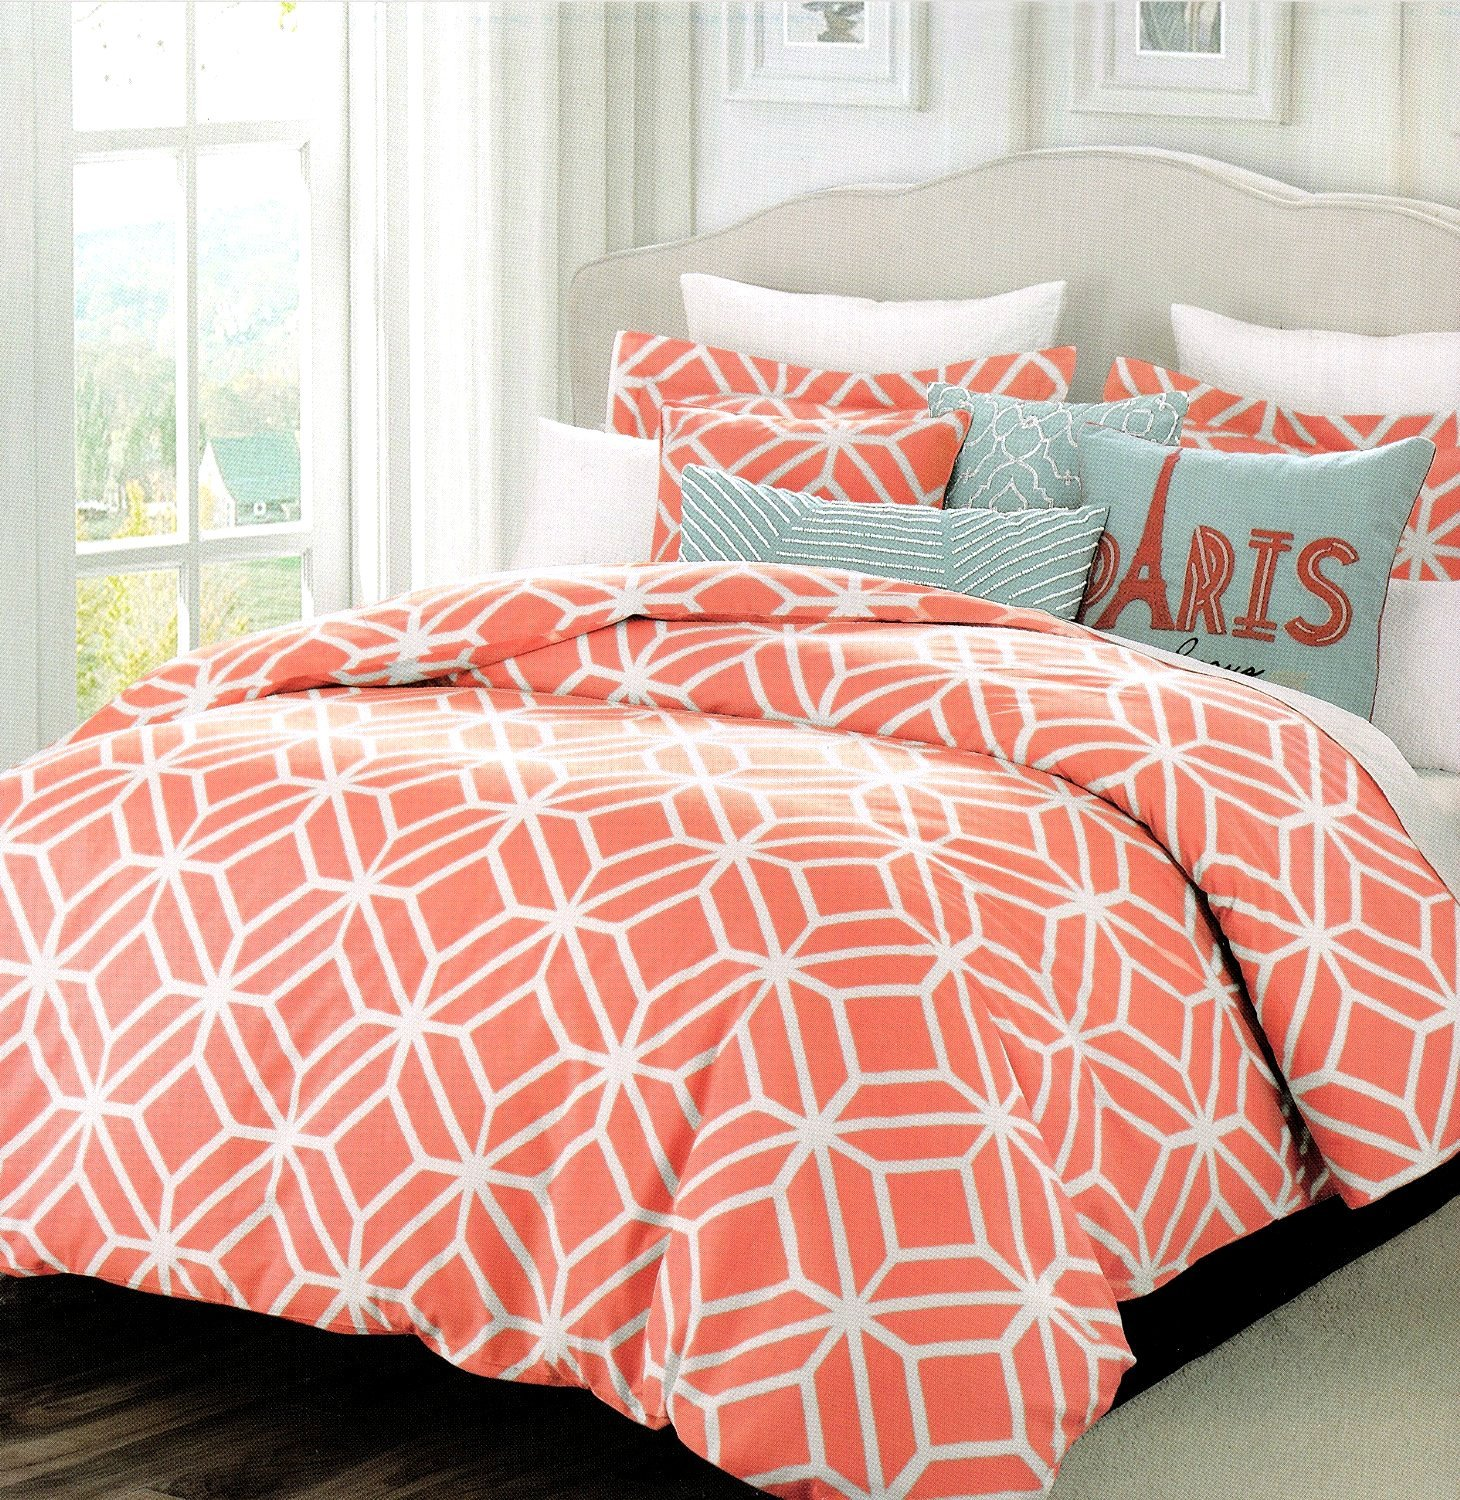 1 Solid Colored Peach Bedspread And 2 Pillow Shams